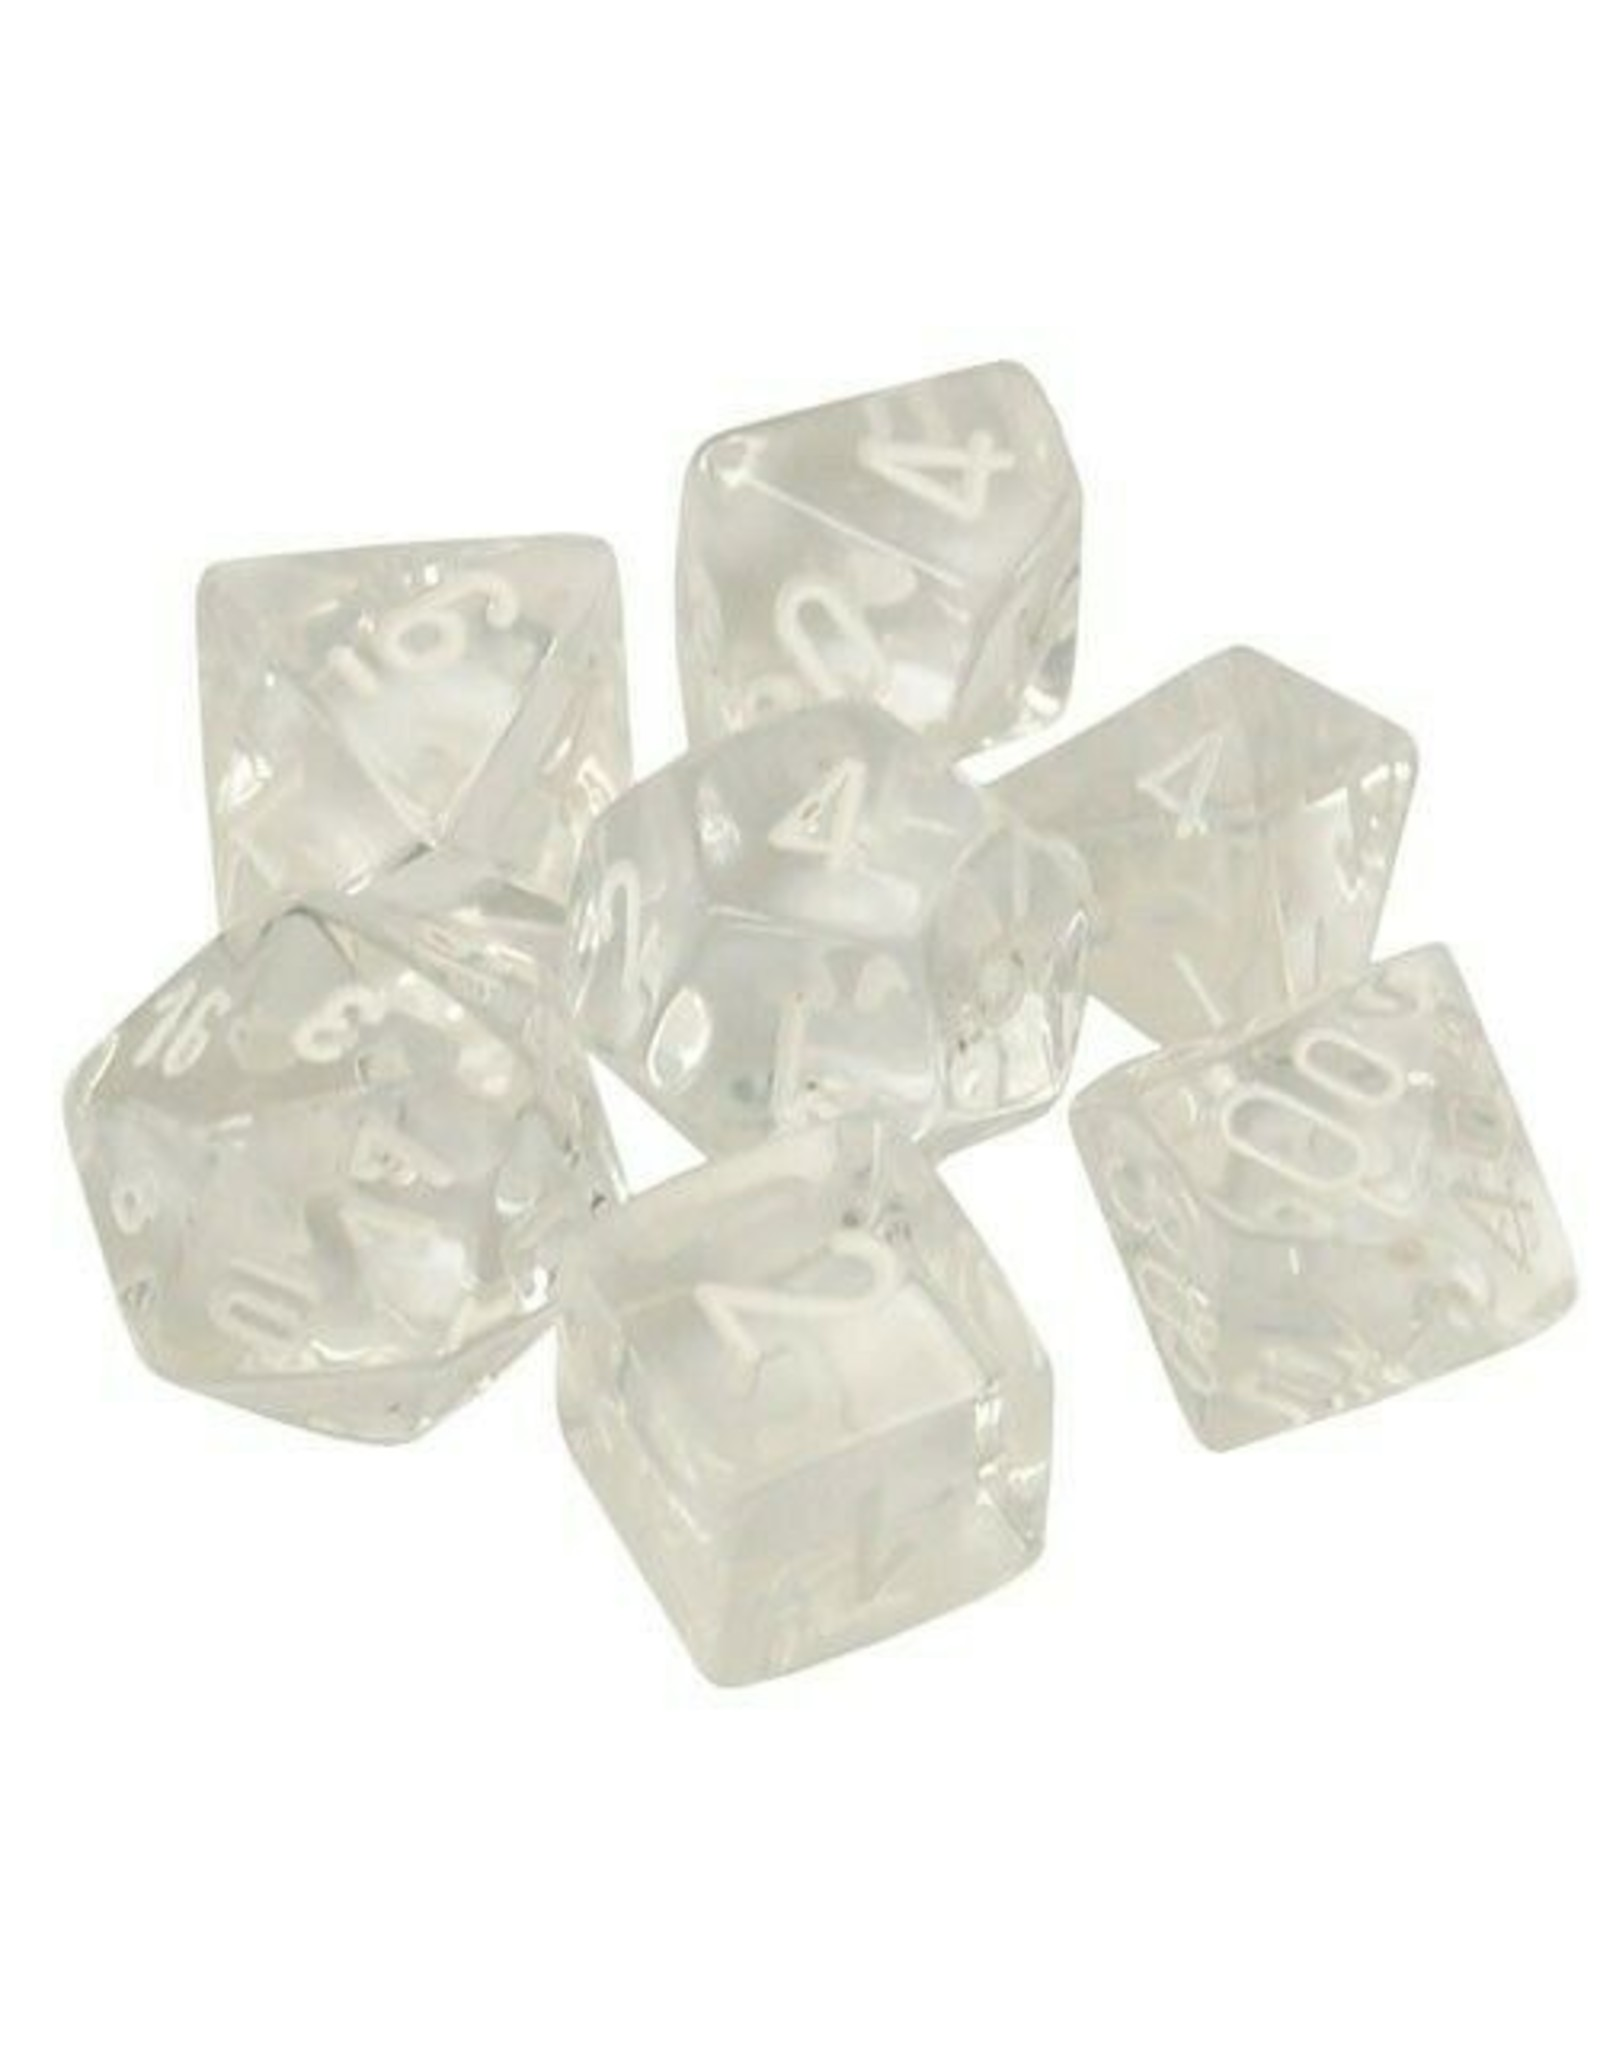 Chessex Translucent Clear/White Set (7)